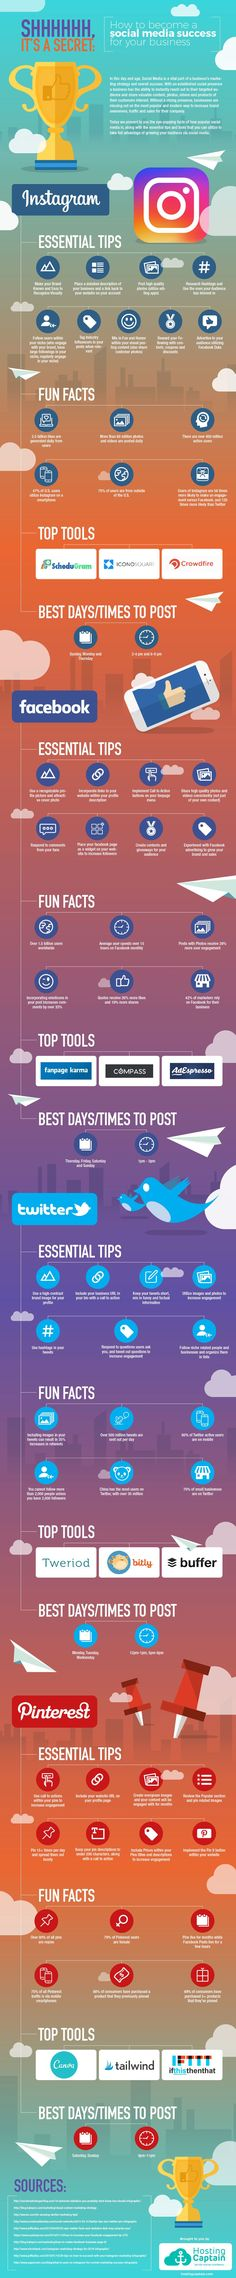 +How+to+Feel+Like+a+Social+Media+Professional+(Infographic)